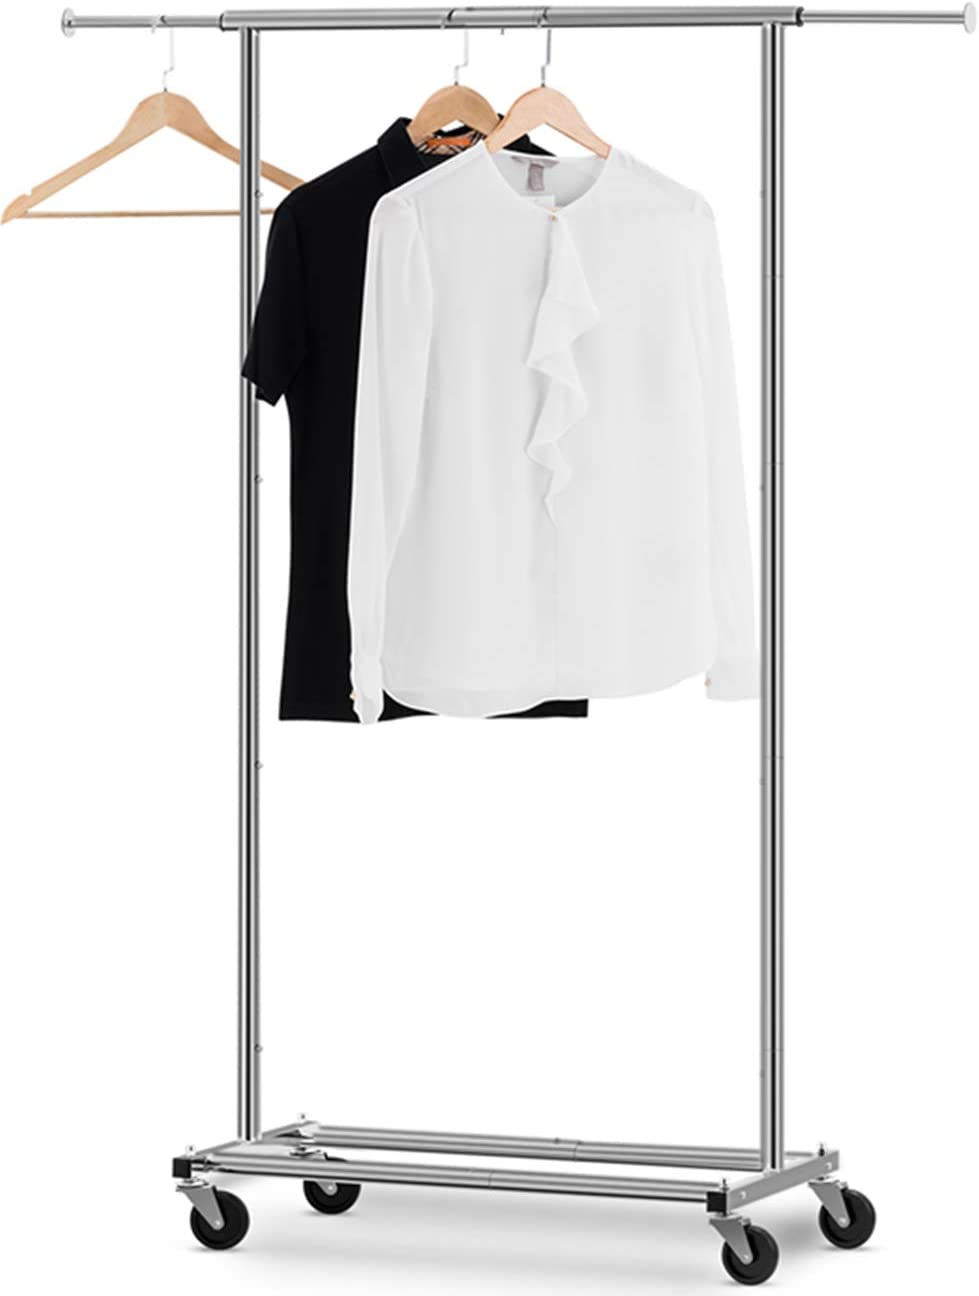 Heavy Duty Commercial Grade Clothes Rolling Rack